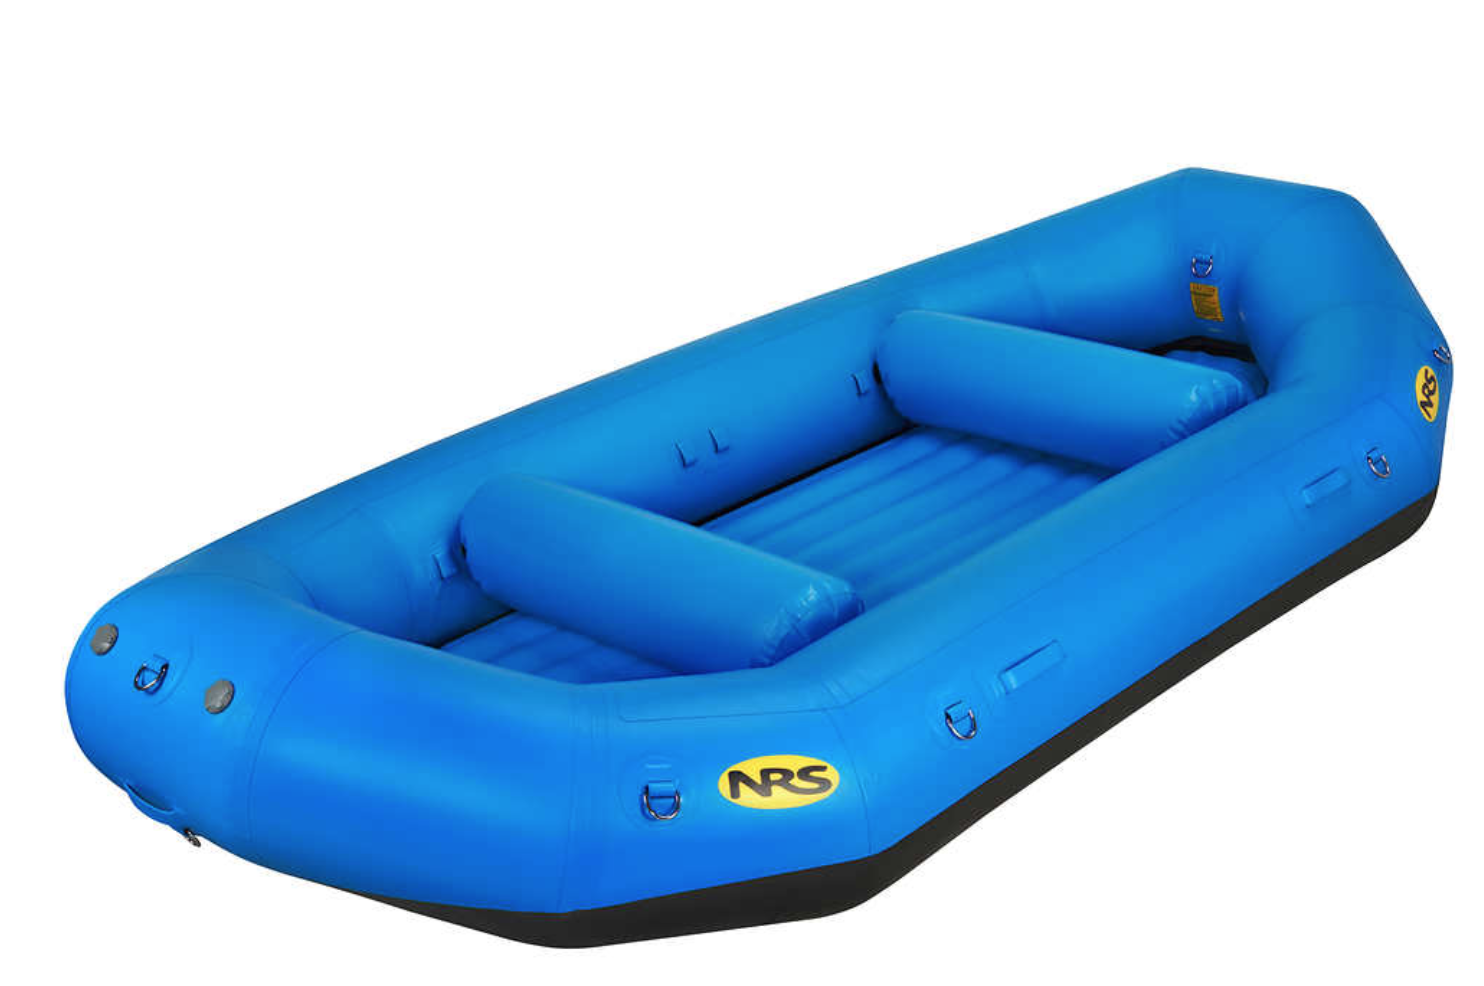 The NRS E-140 self bailing whitewater raft. Source:  https://www.nrs.com/product/1085/nrs-e-140-self-bailing-rafts